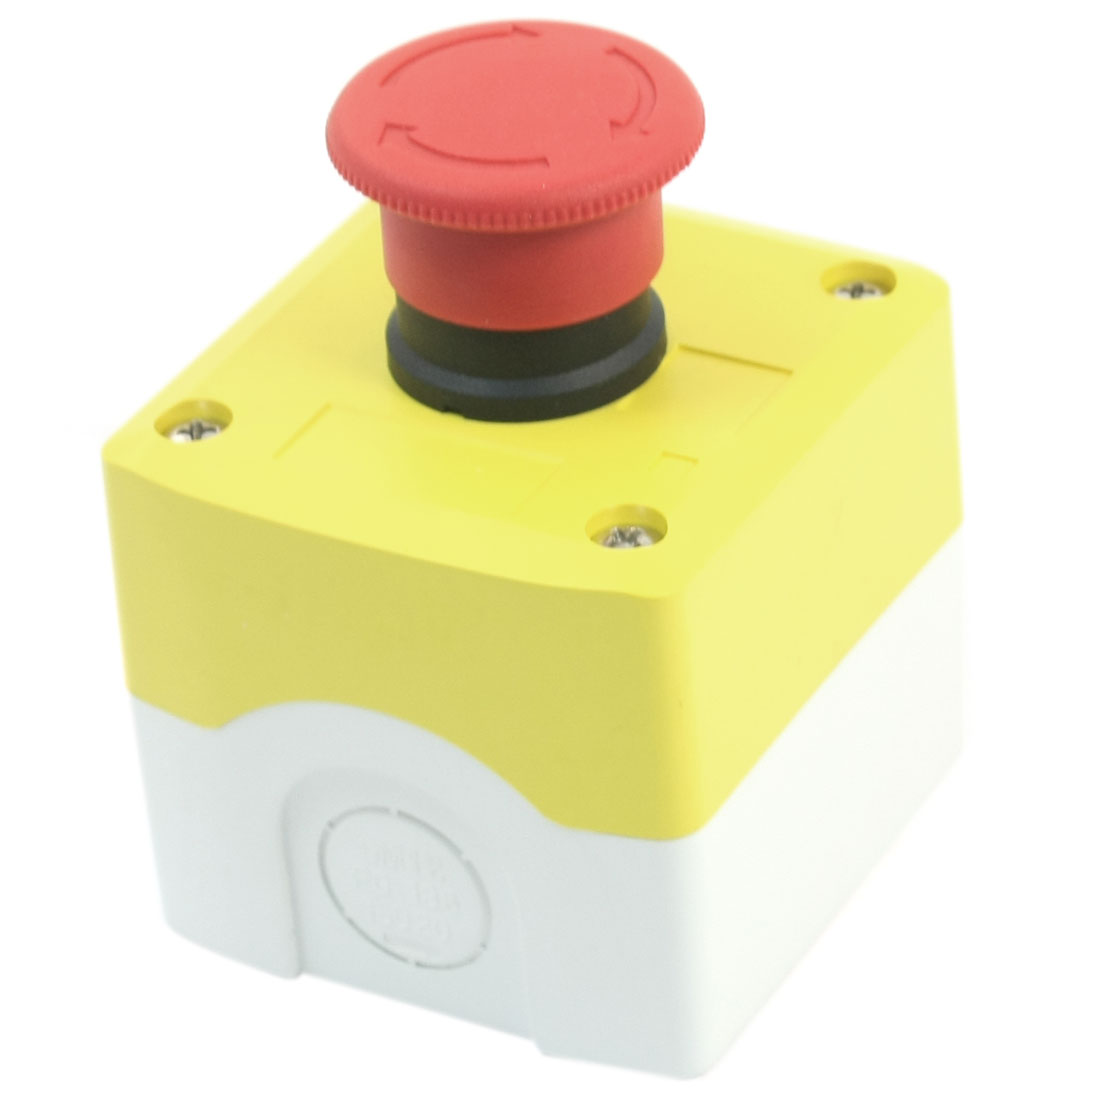 Emergency Stop Red Mushroom Head Latching SPST Switch w Box AC400V 10A